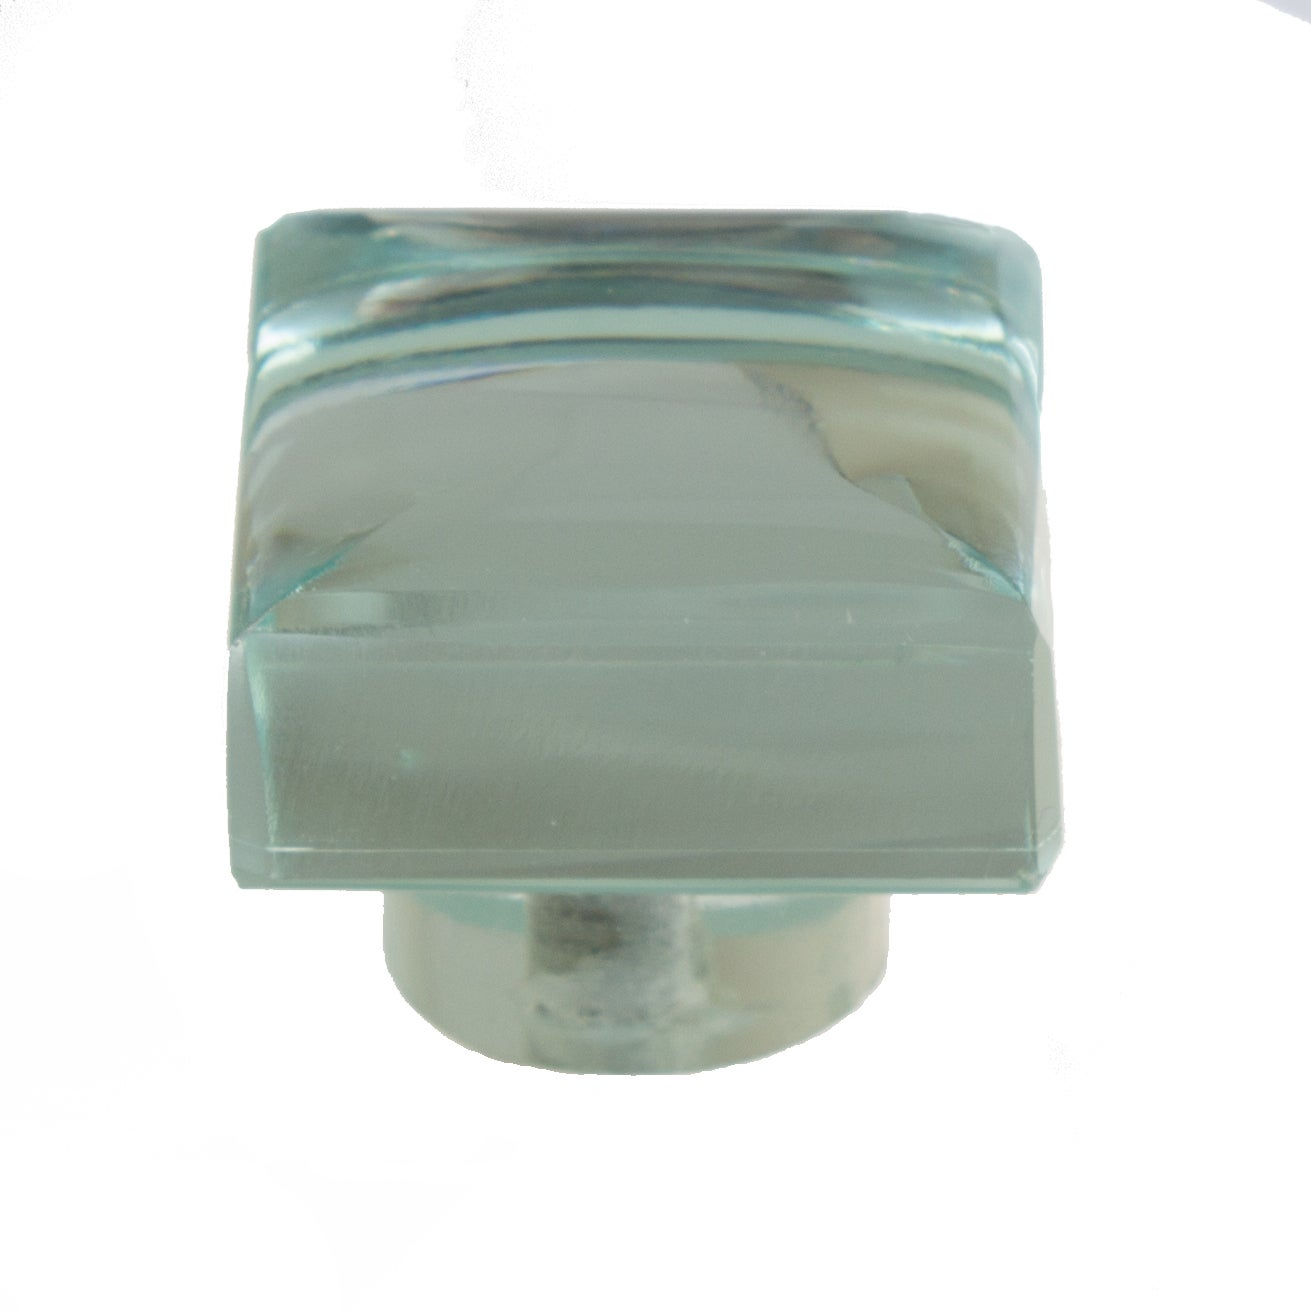 Shop gliderite 1 188 inch modern square mirror glass cabinet knobs pack of 10 or 25 free shipping on orders over 45 overstock com 16636666